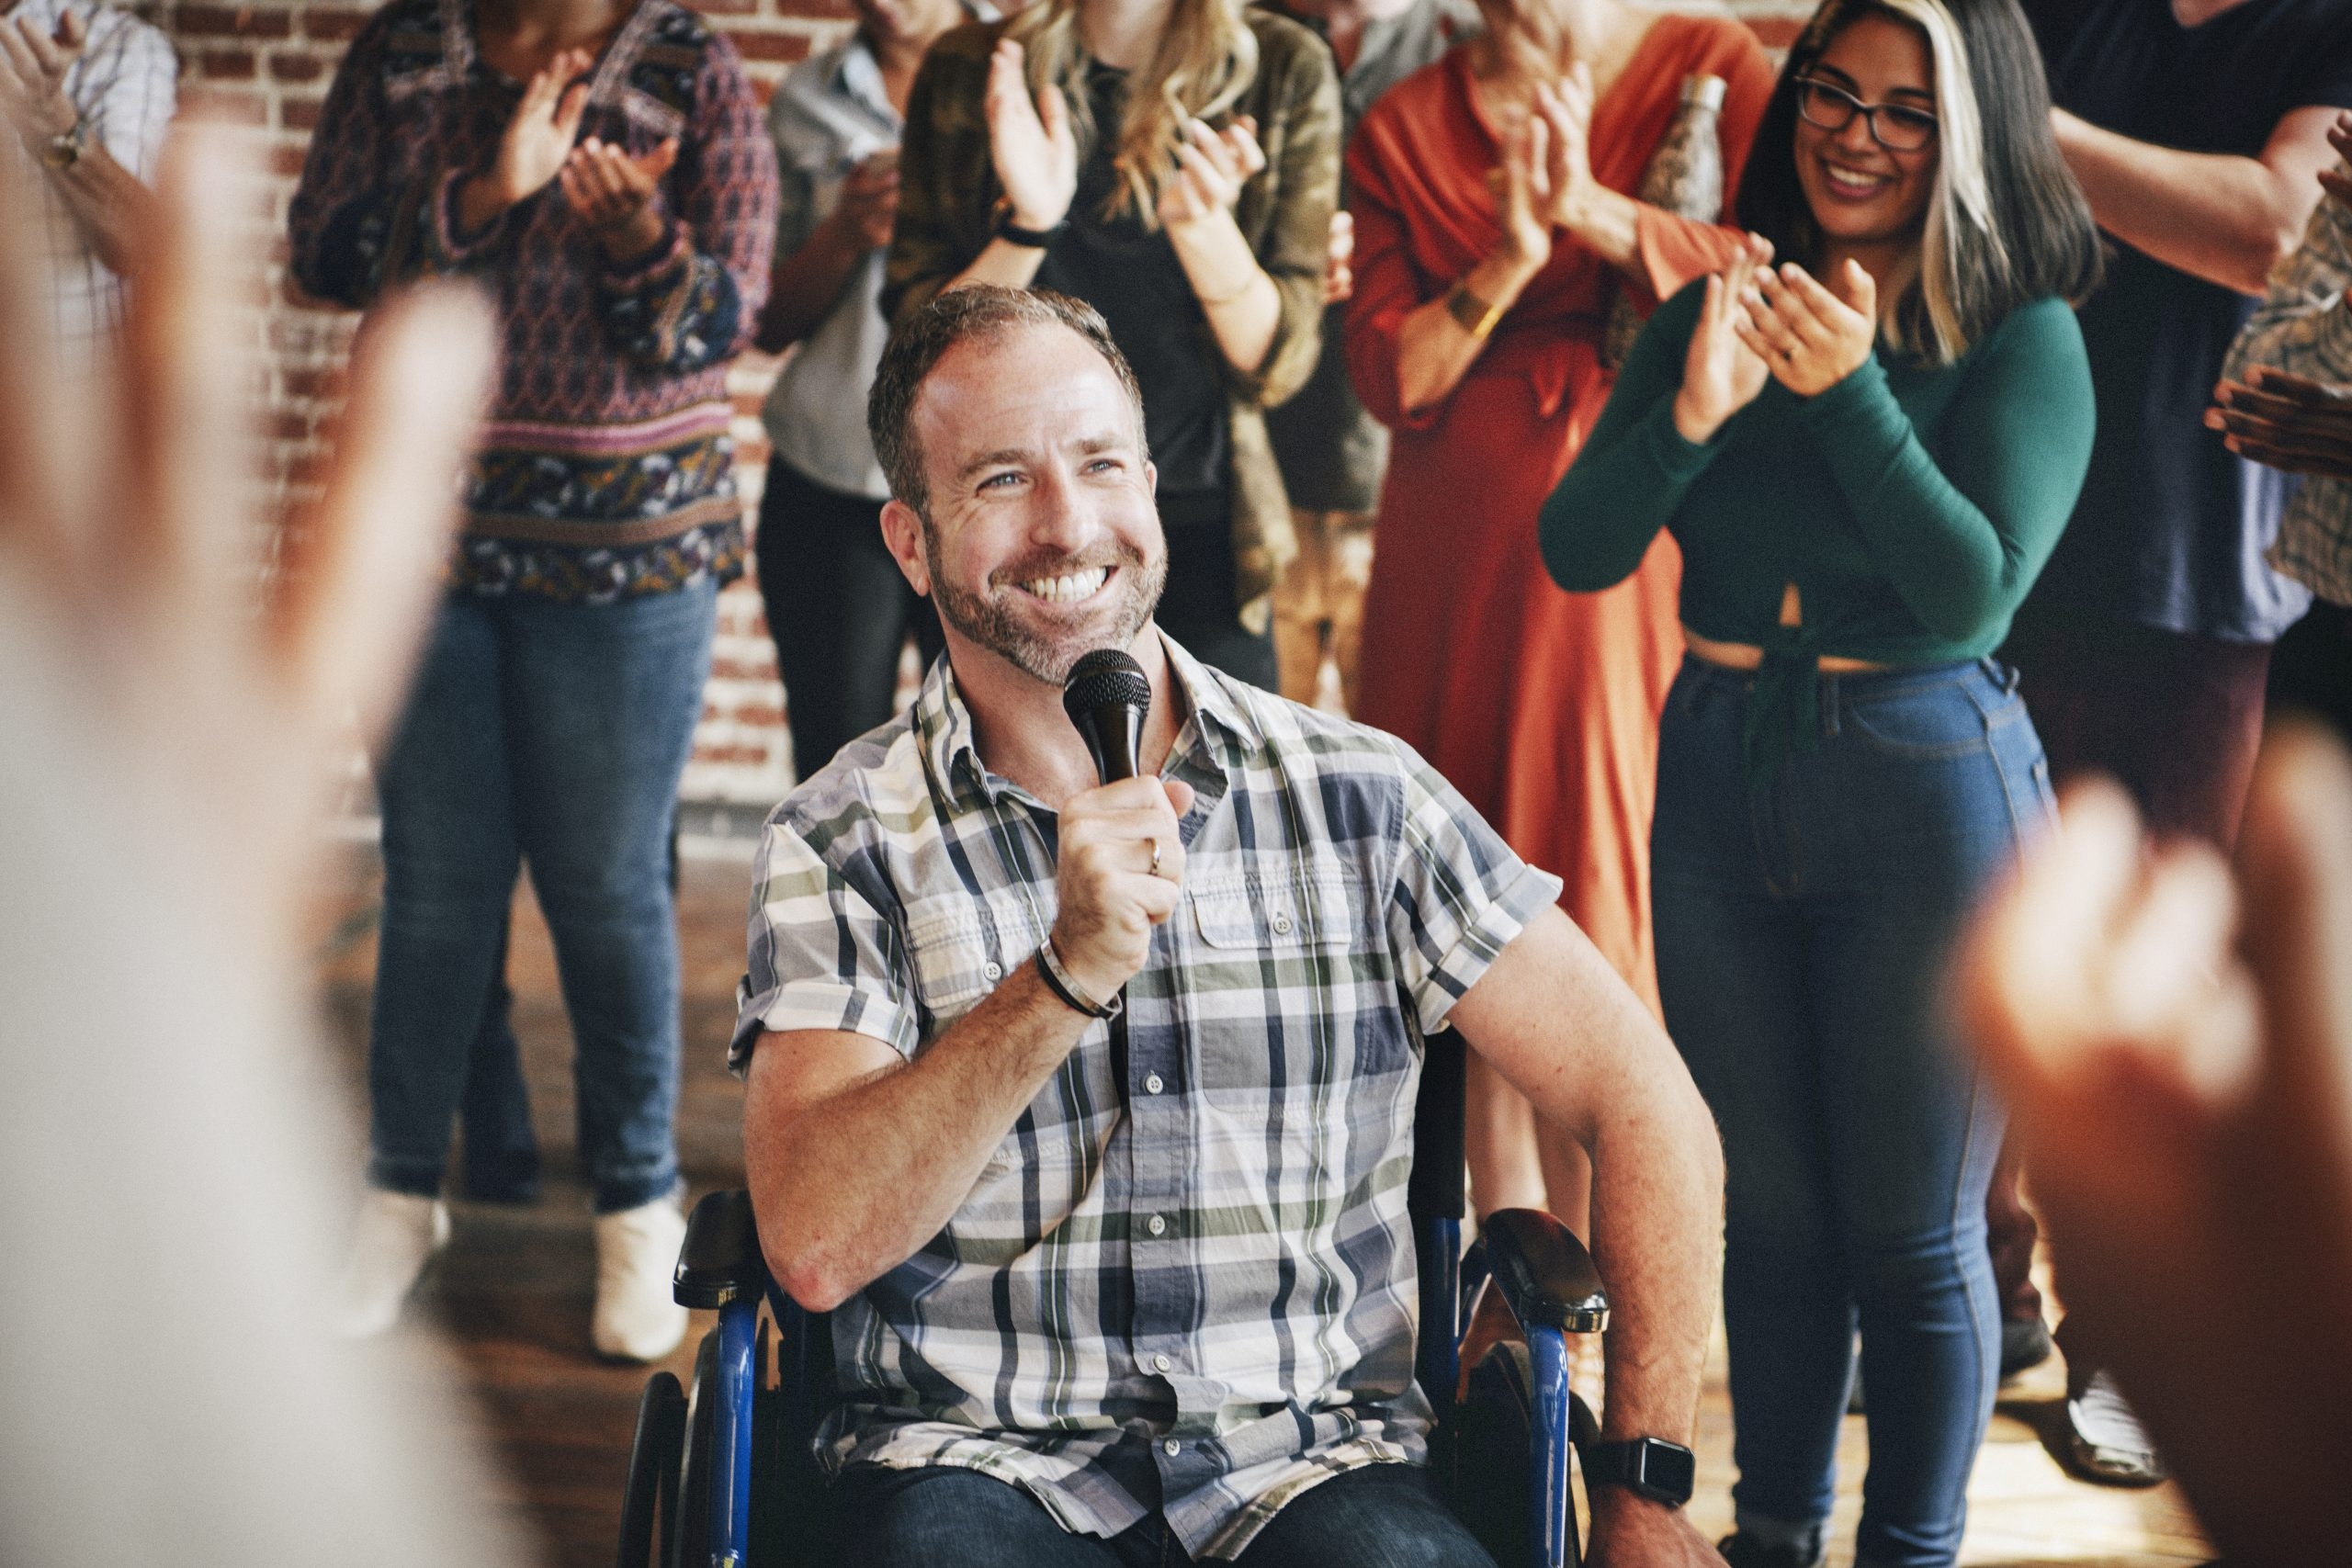 Man in a wheelchair speaking on a microphone in a workshop